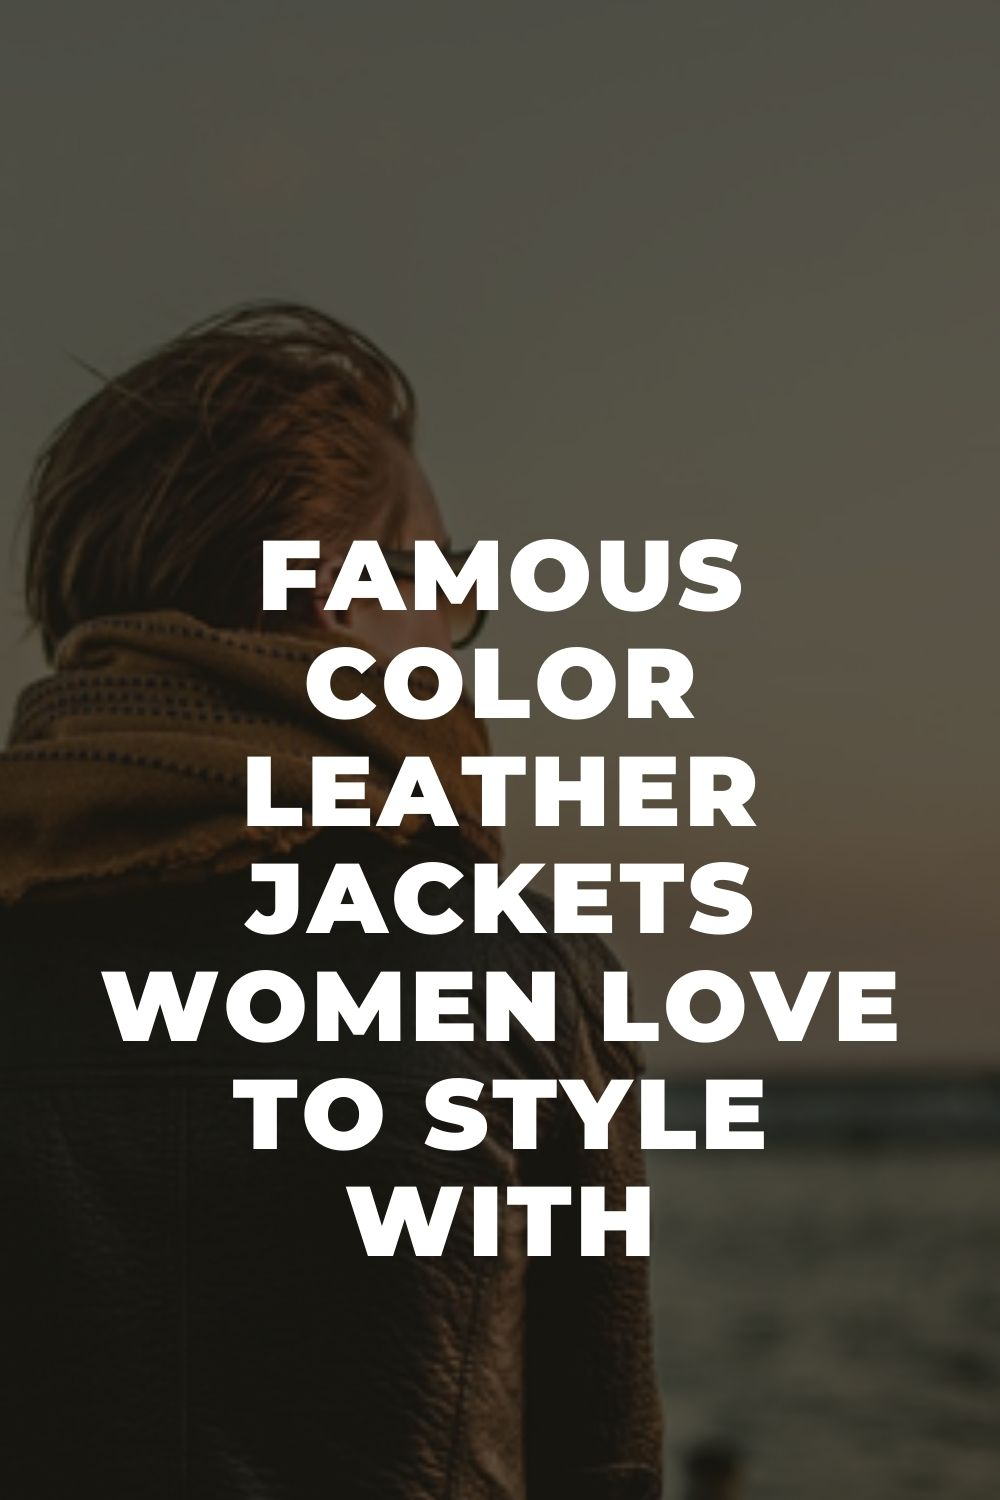 Famous Color Leather Jackets Women Love to Style with